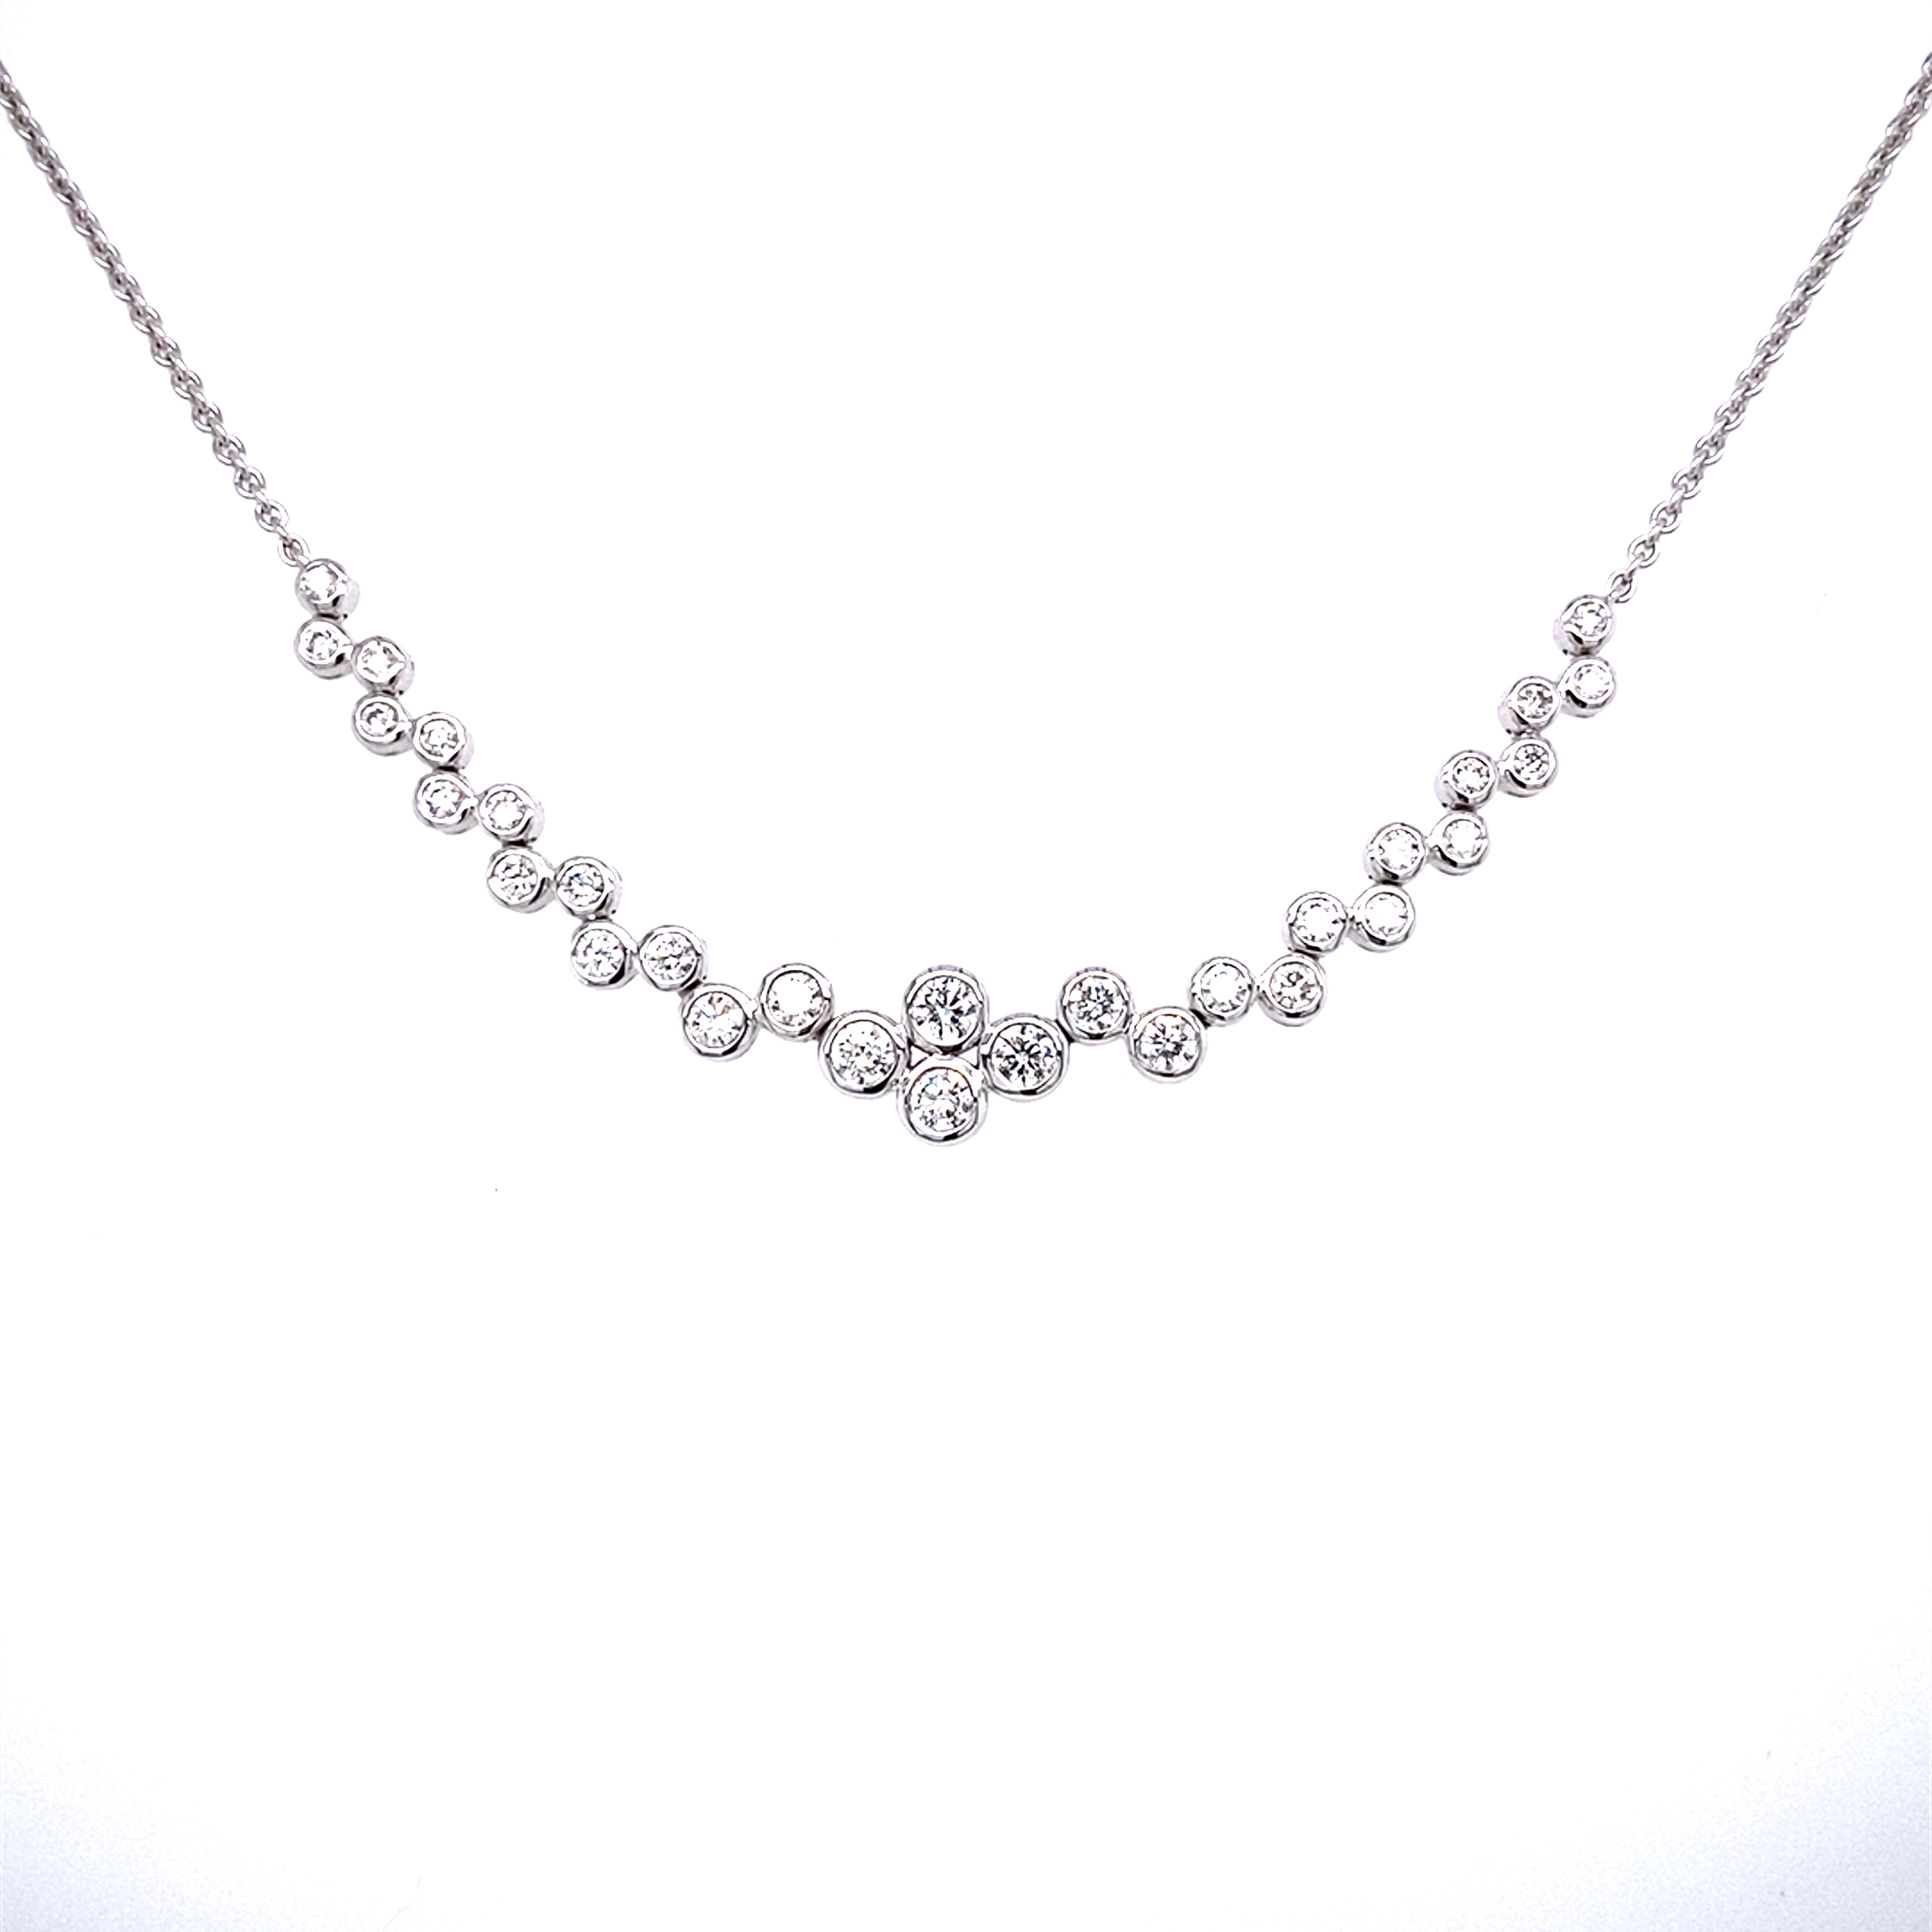 A beautiful 18ct white gold Diamond set necklet